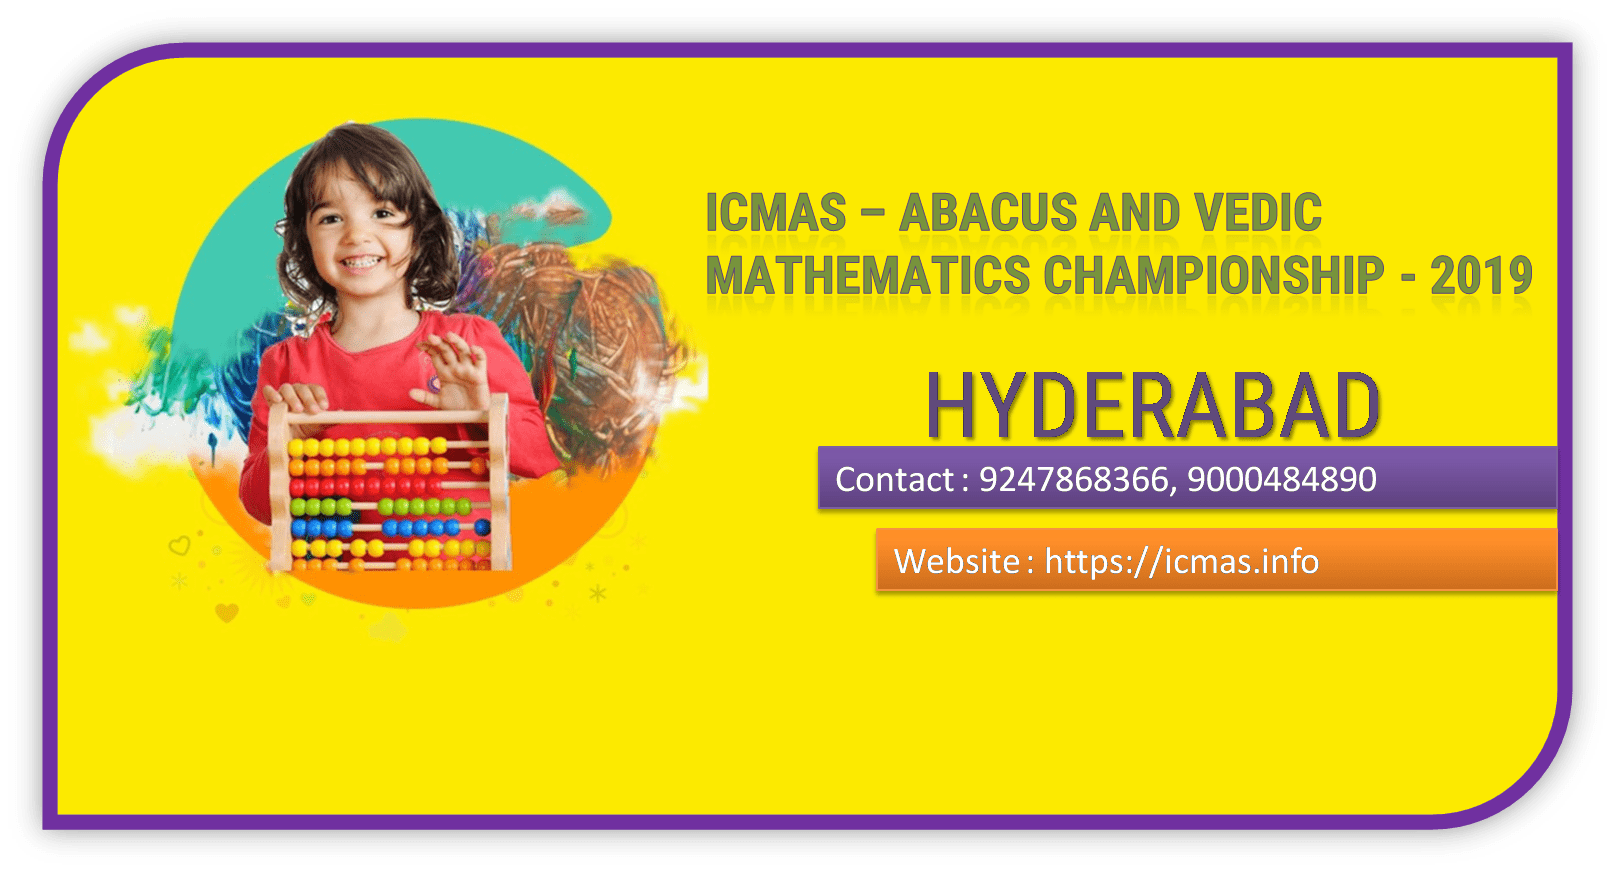 abacus-championship-hyderabad-2019